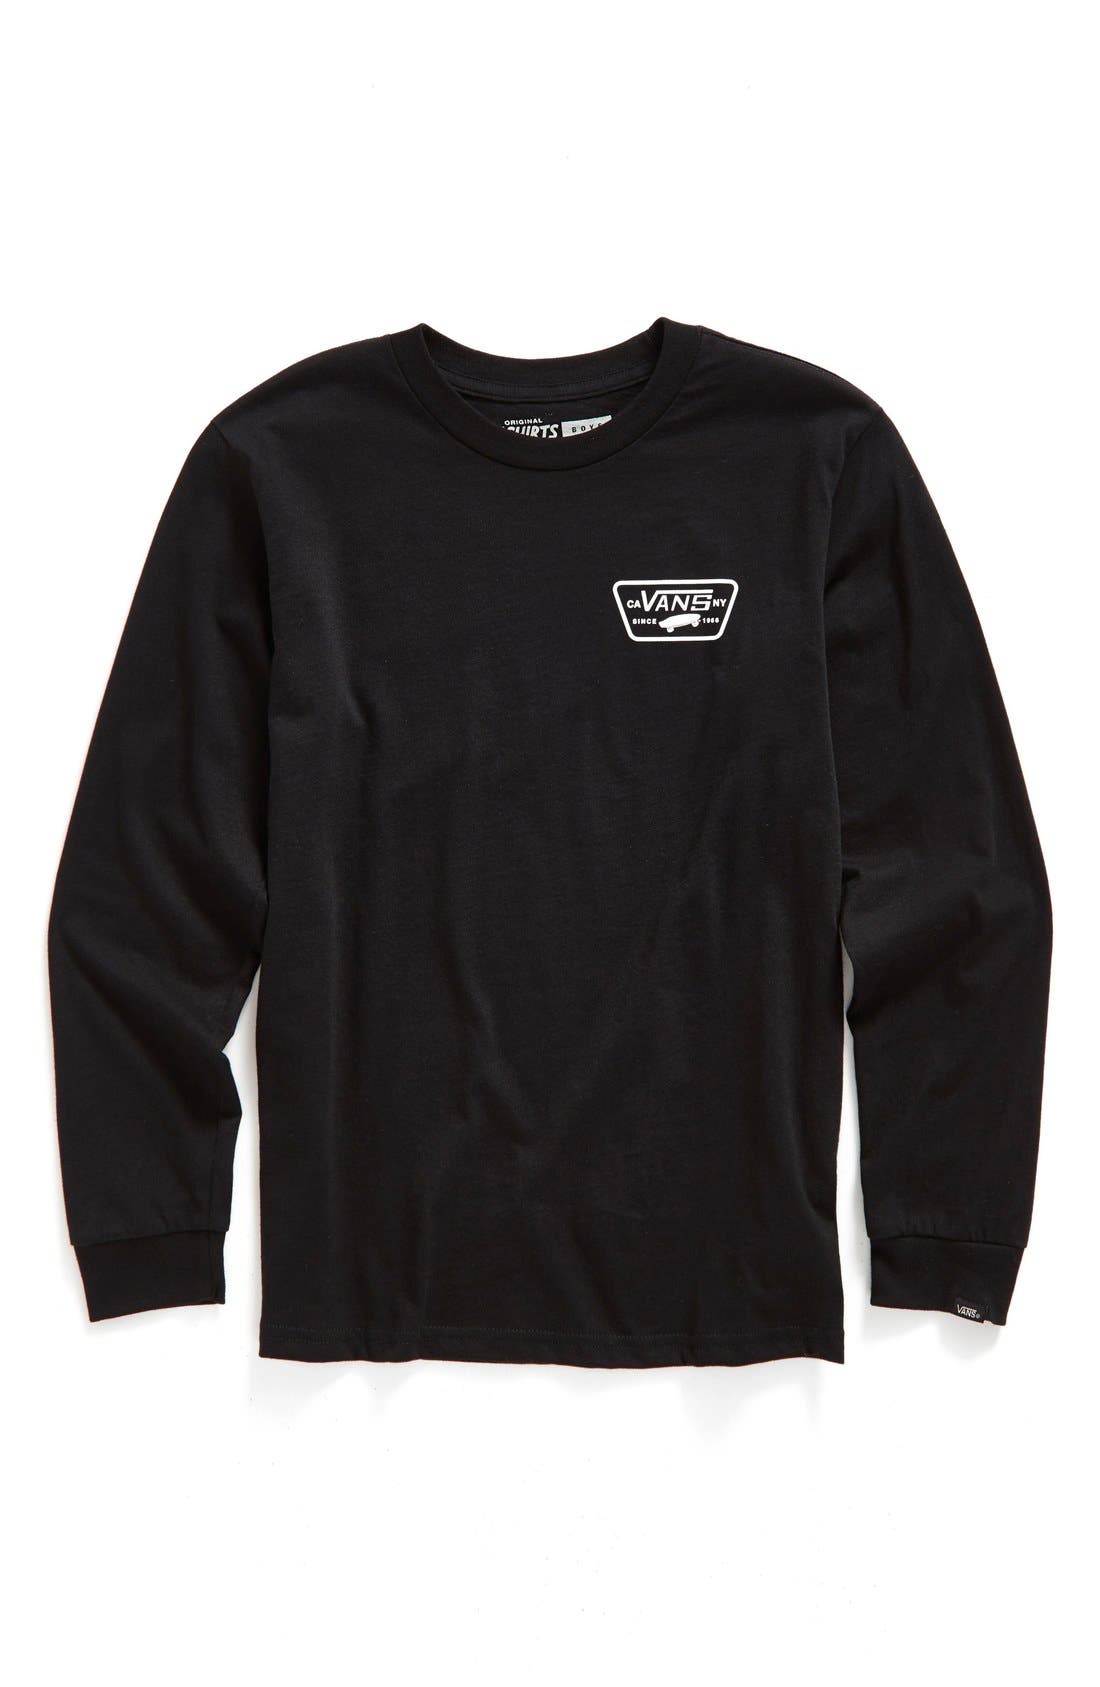 Main Image - Vans 'Full Patch' Long Sleeve T-Shirt (Big Boys)